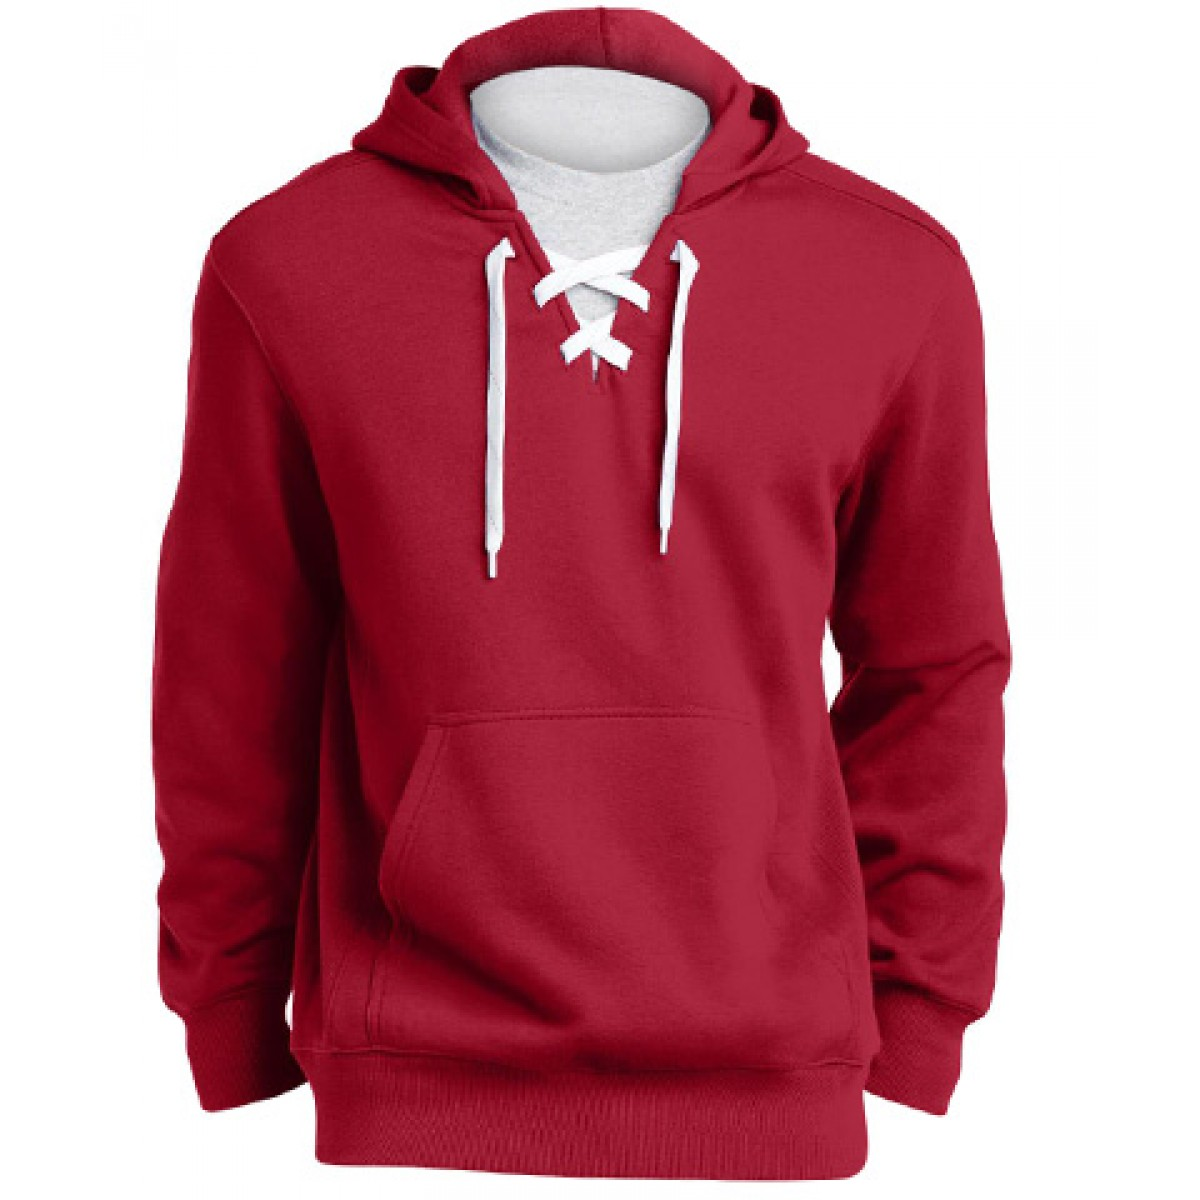 Lace Up Pullover Hooded Sweatshirt-Red-S